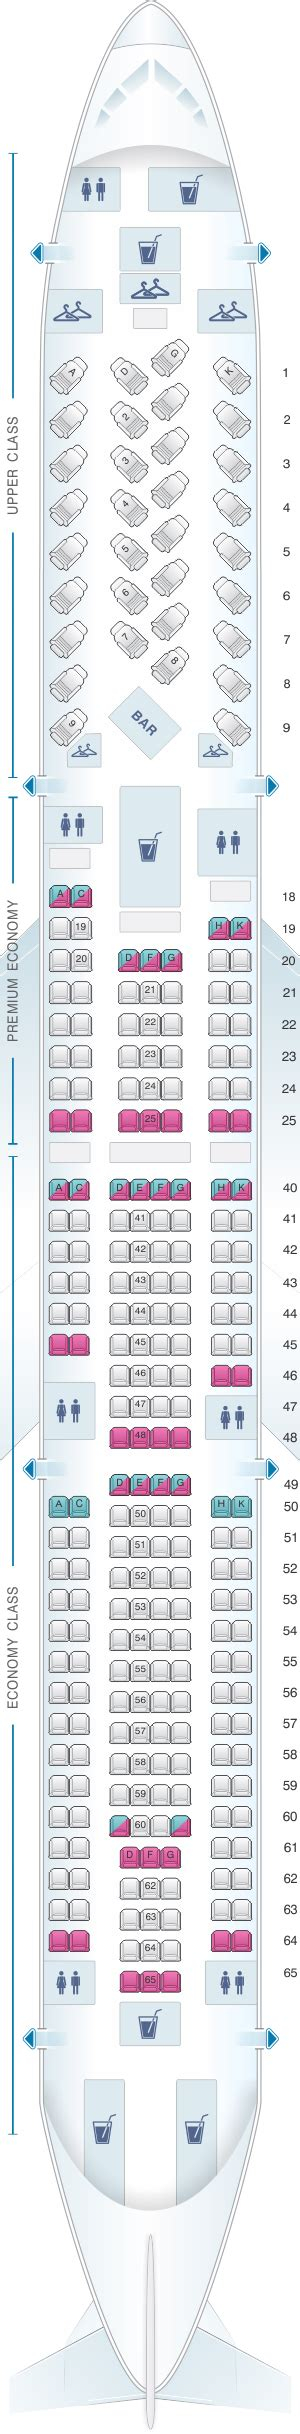 best seats on atlantic airbus a330 300 seat map atlantic airbus a330 300 3 cabin